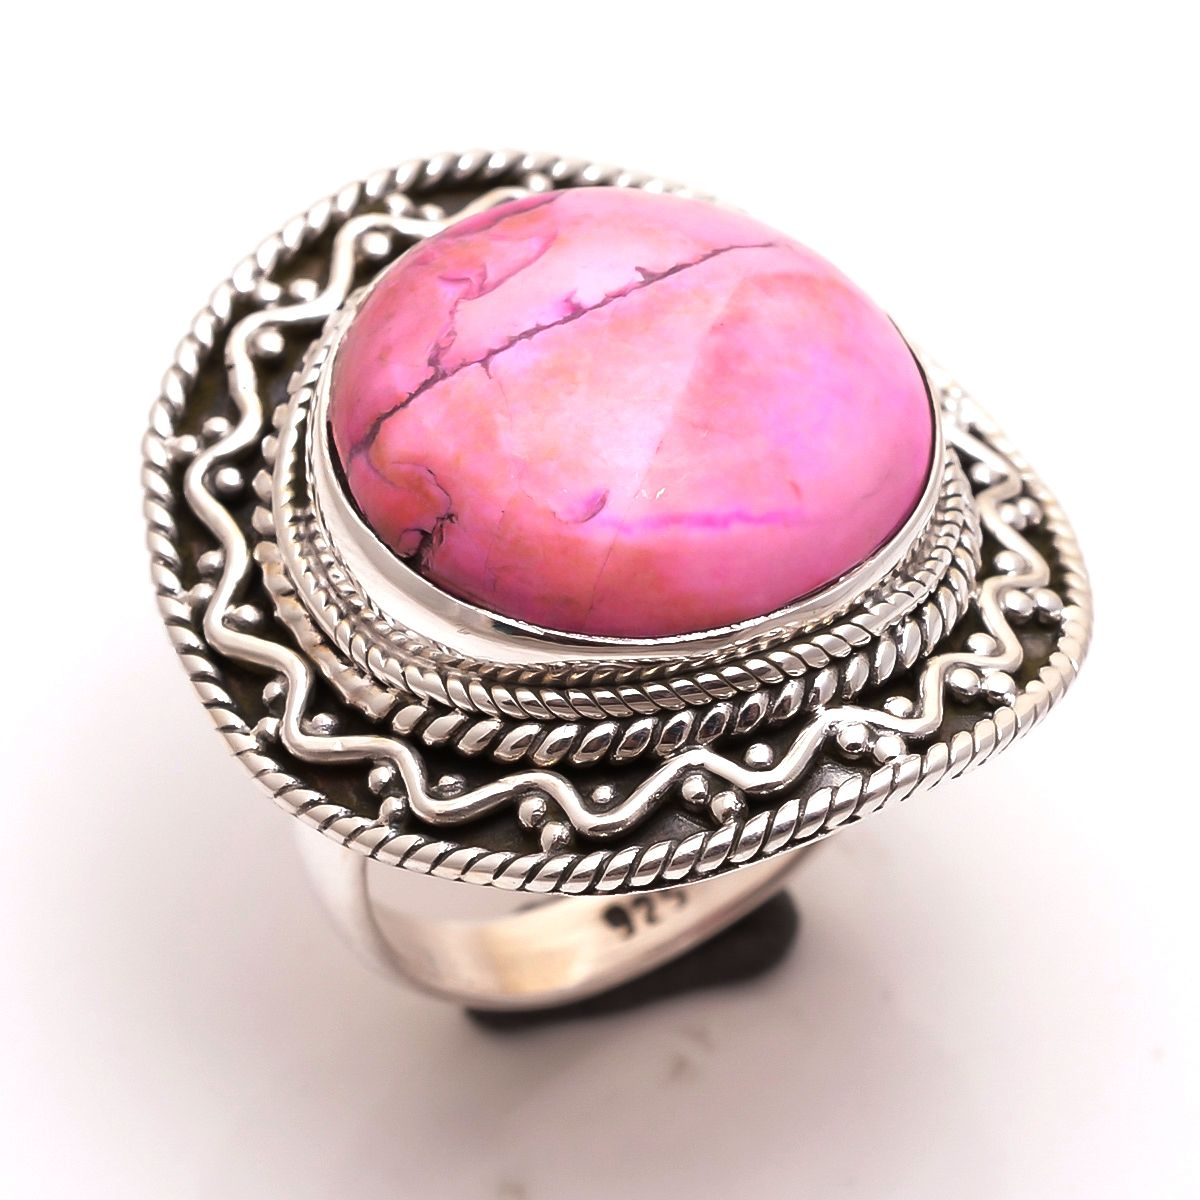 Howlite Gemstone 925 Sterling Silver Ring Size 7.5